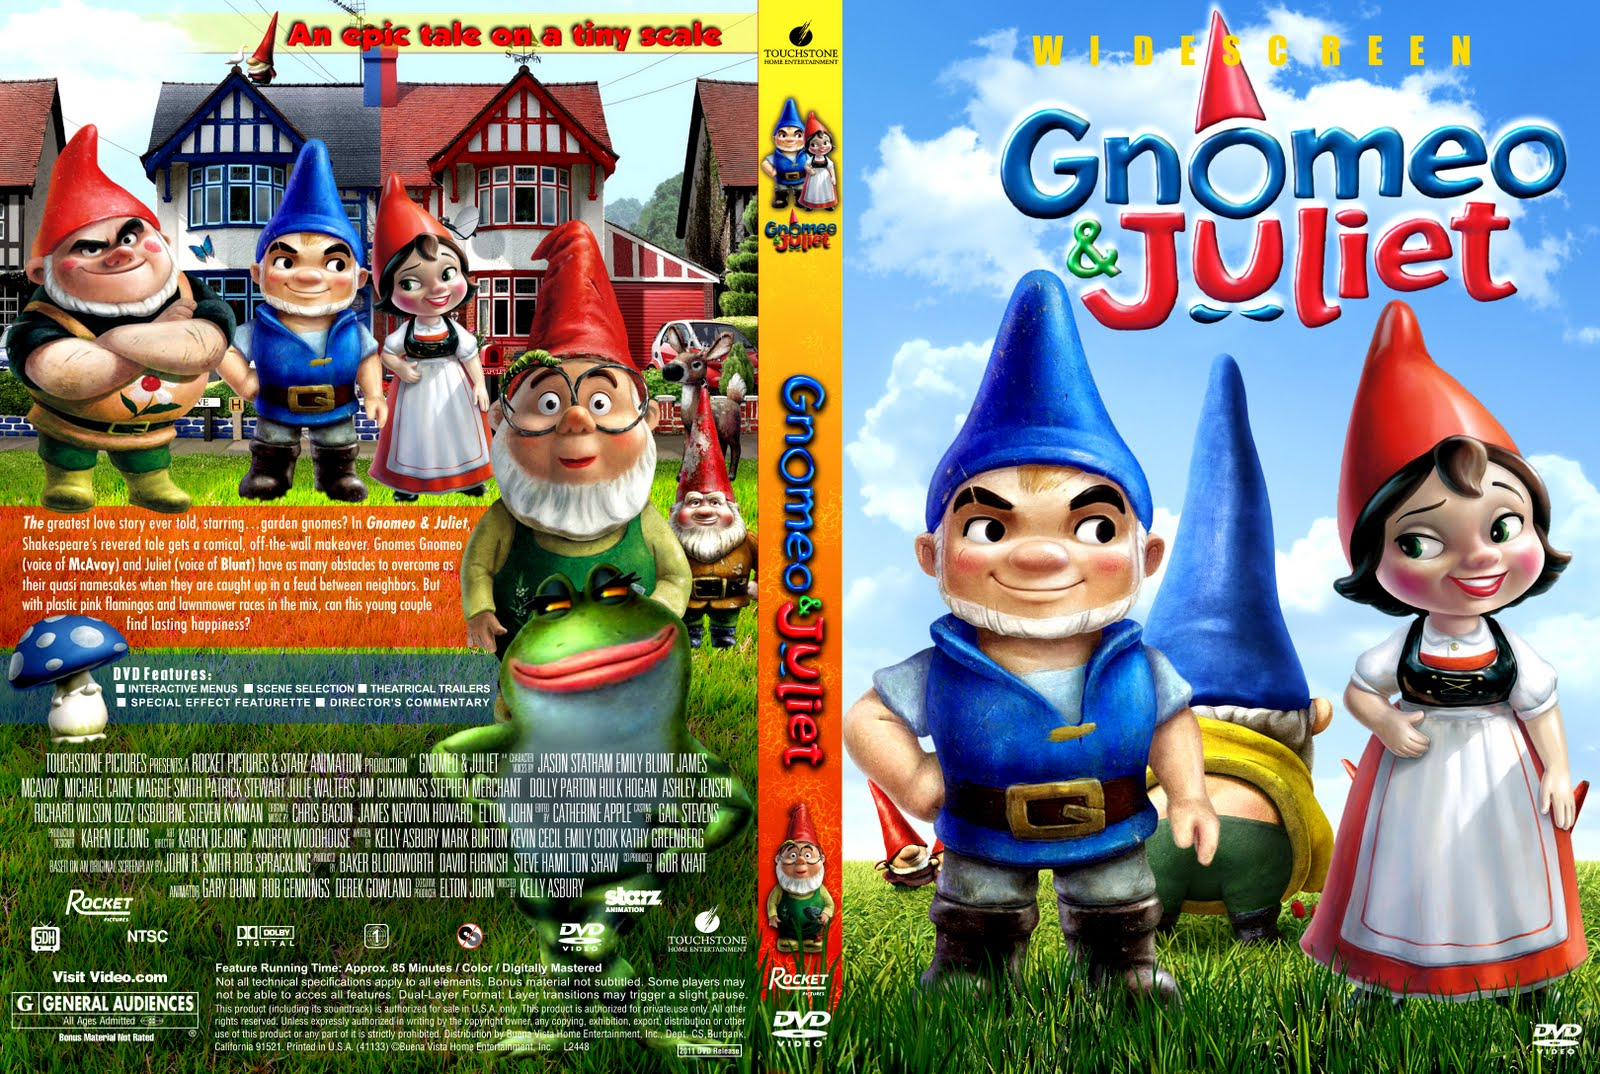 Covers Box Sk Gnomeo And Juliet 2011 High Quality Dvd Blueray Movie